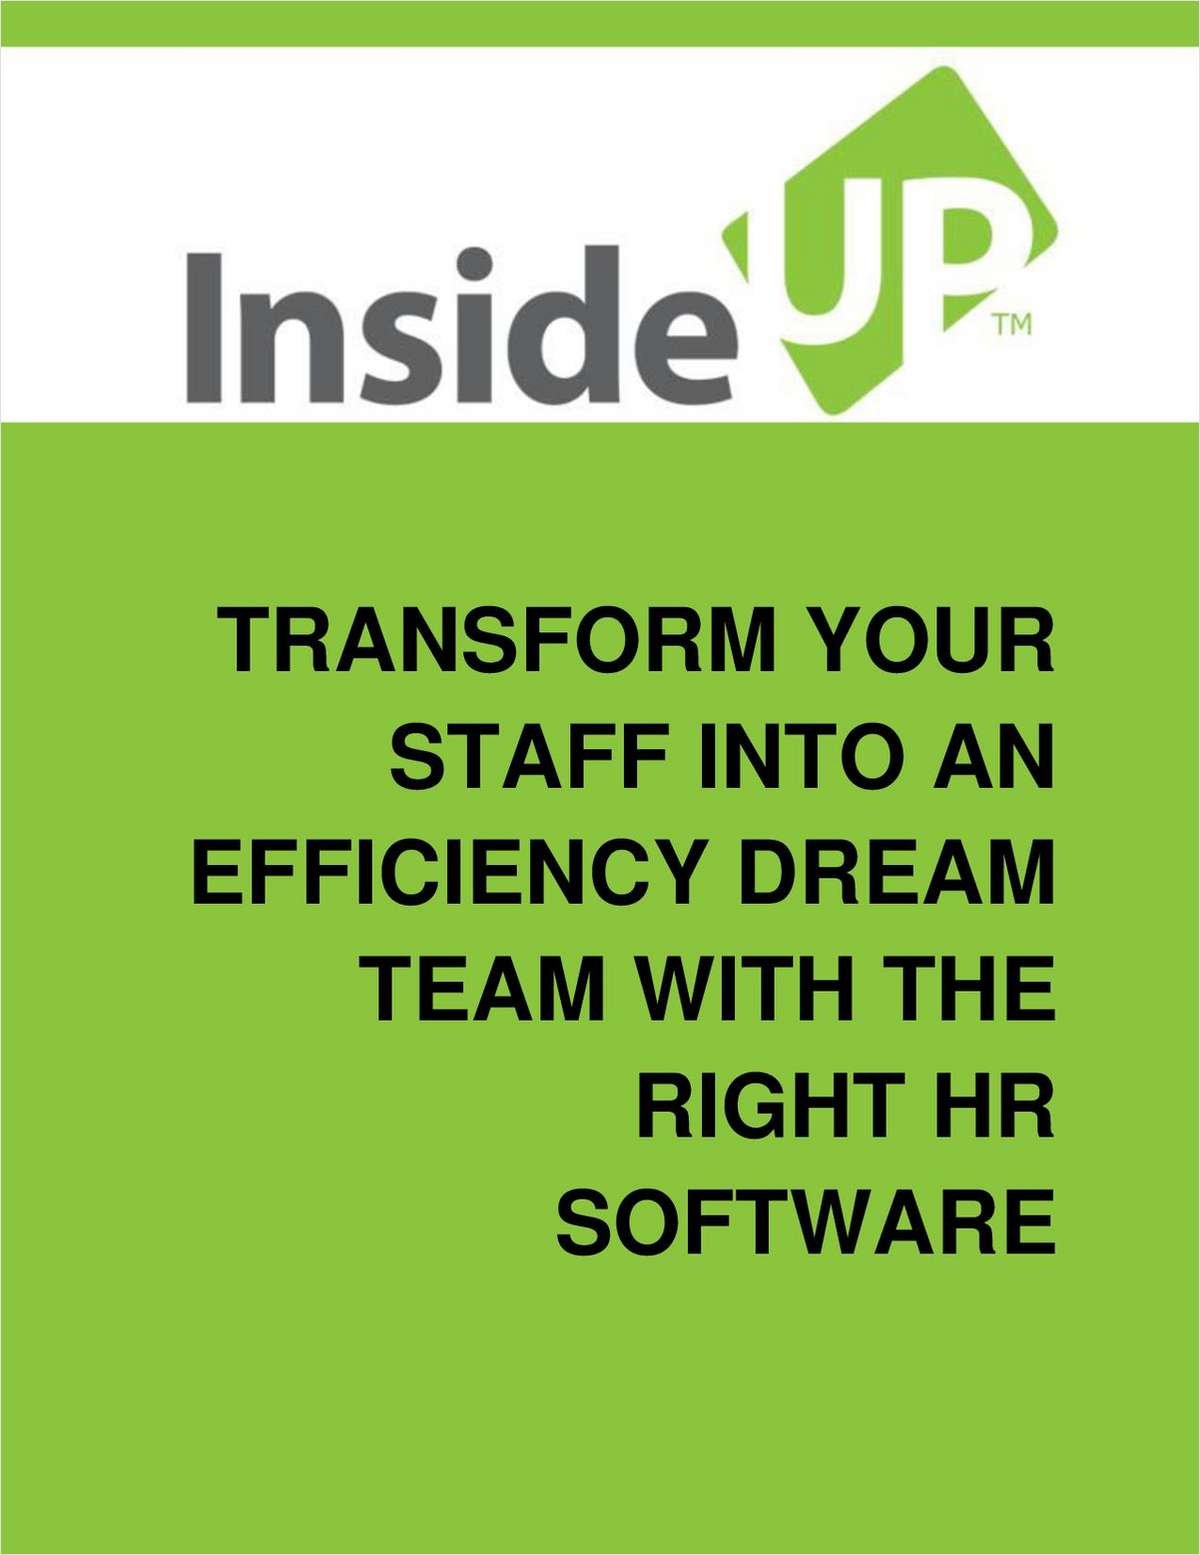 Learn How The Right HR Software Can Transform Your Employees Into An Efficiency Dream Team